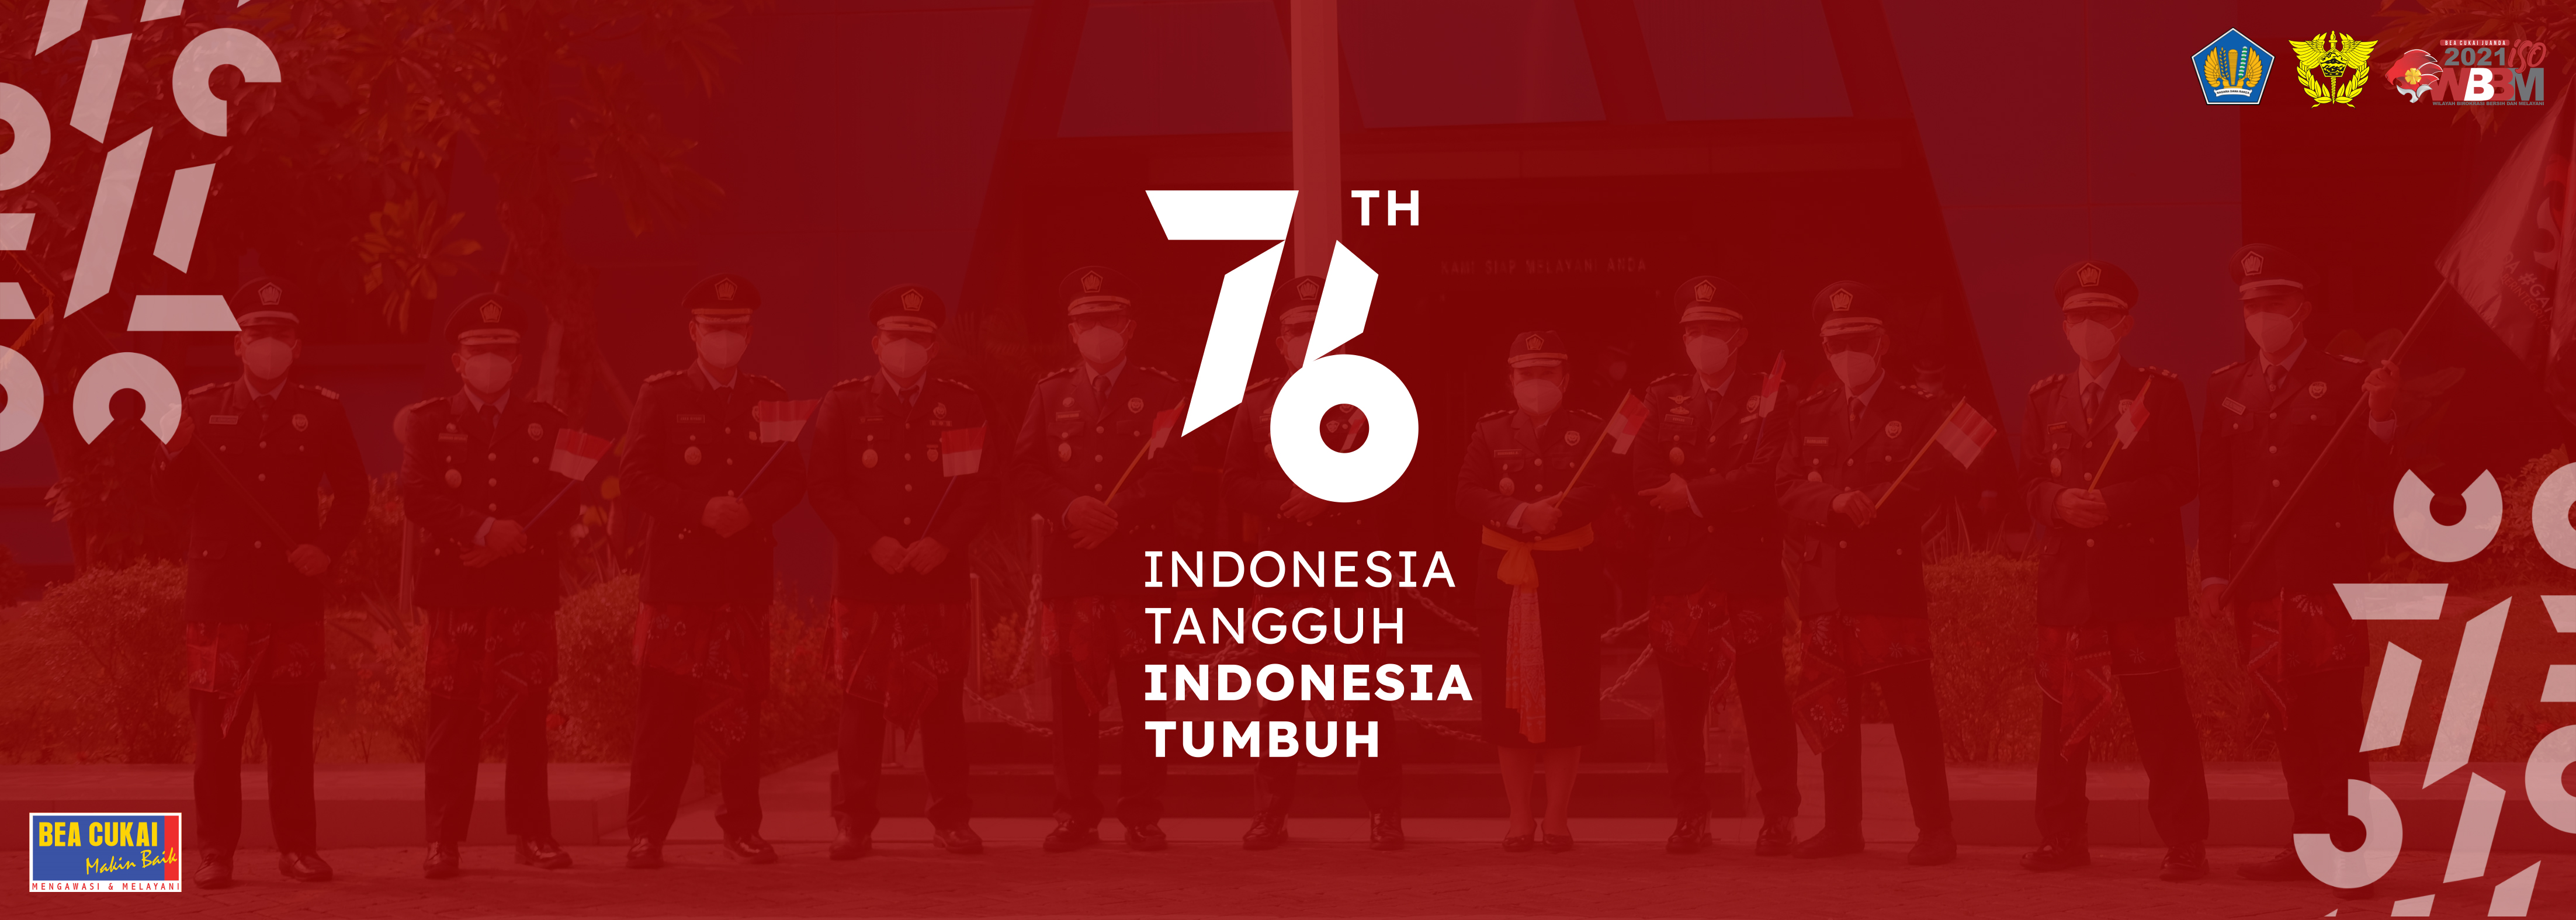 Banner_76th_Indonesia